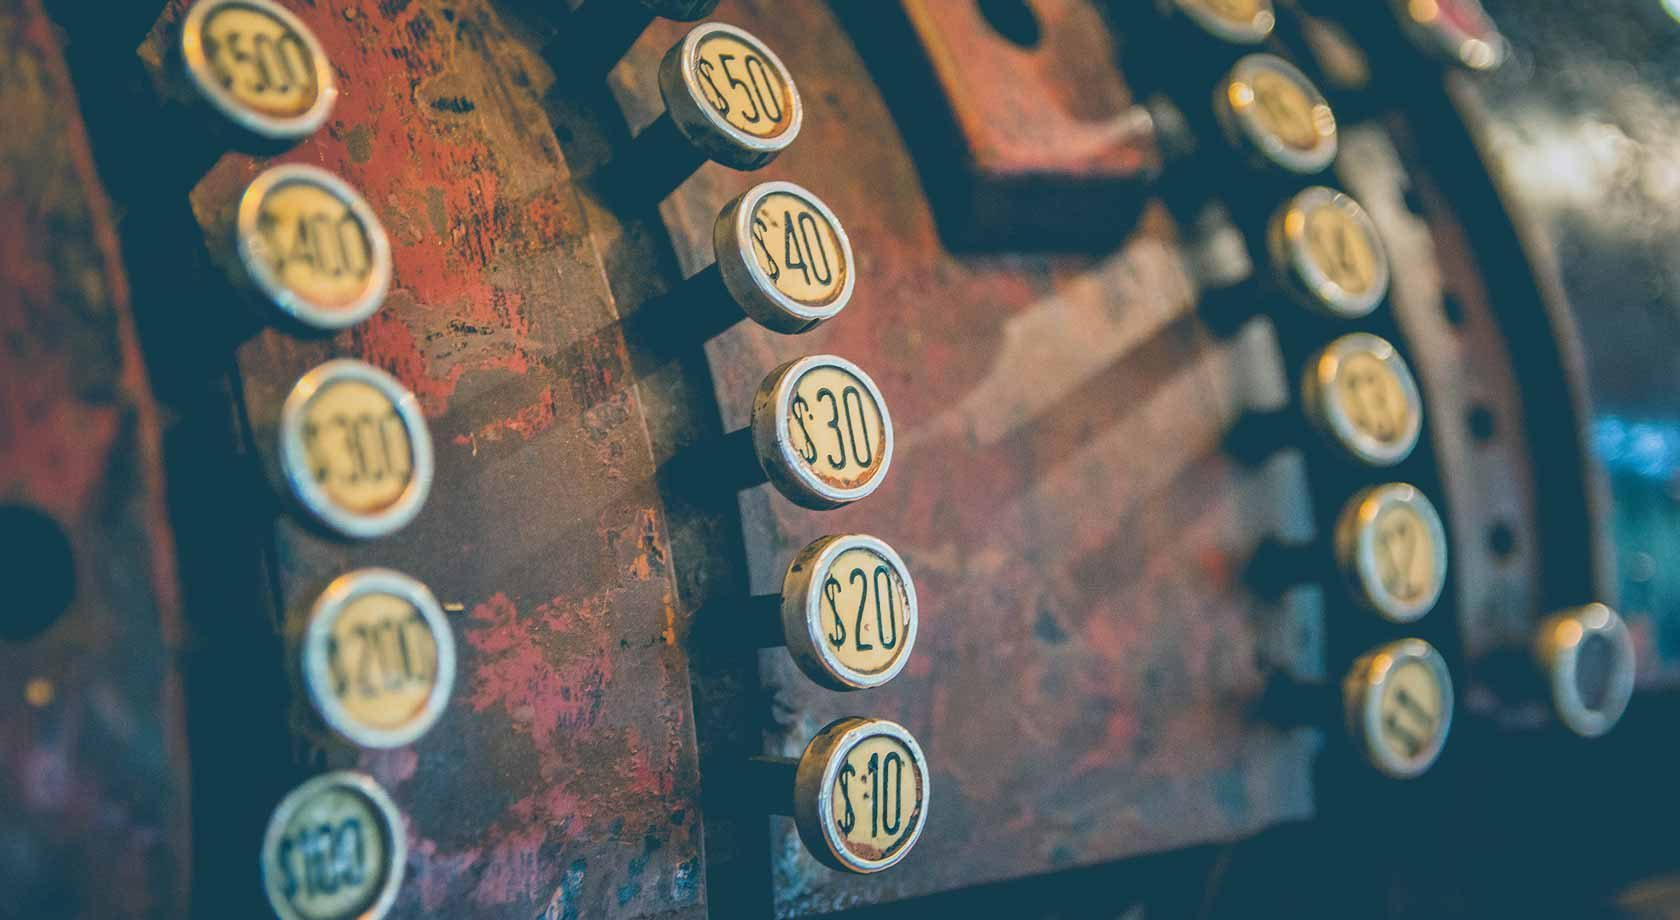 Pricing Psychology: How Do People Perceive Prices